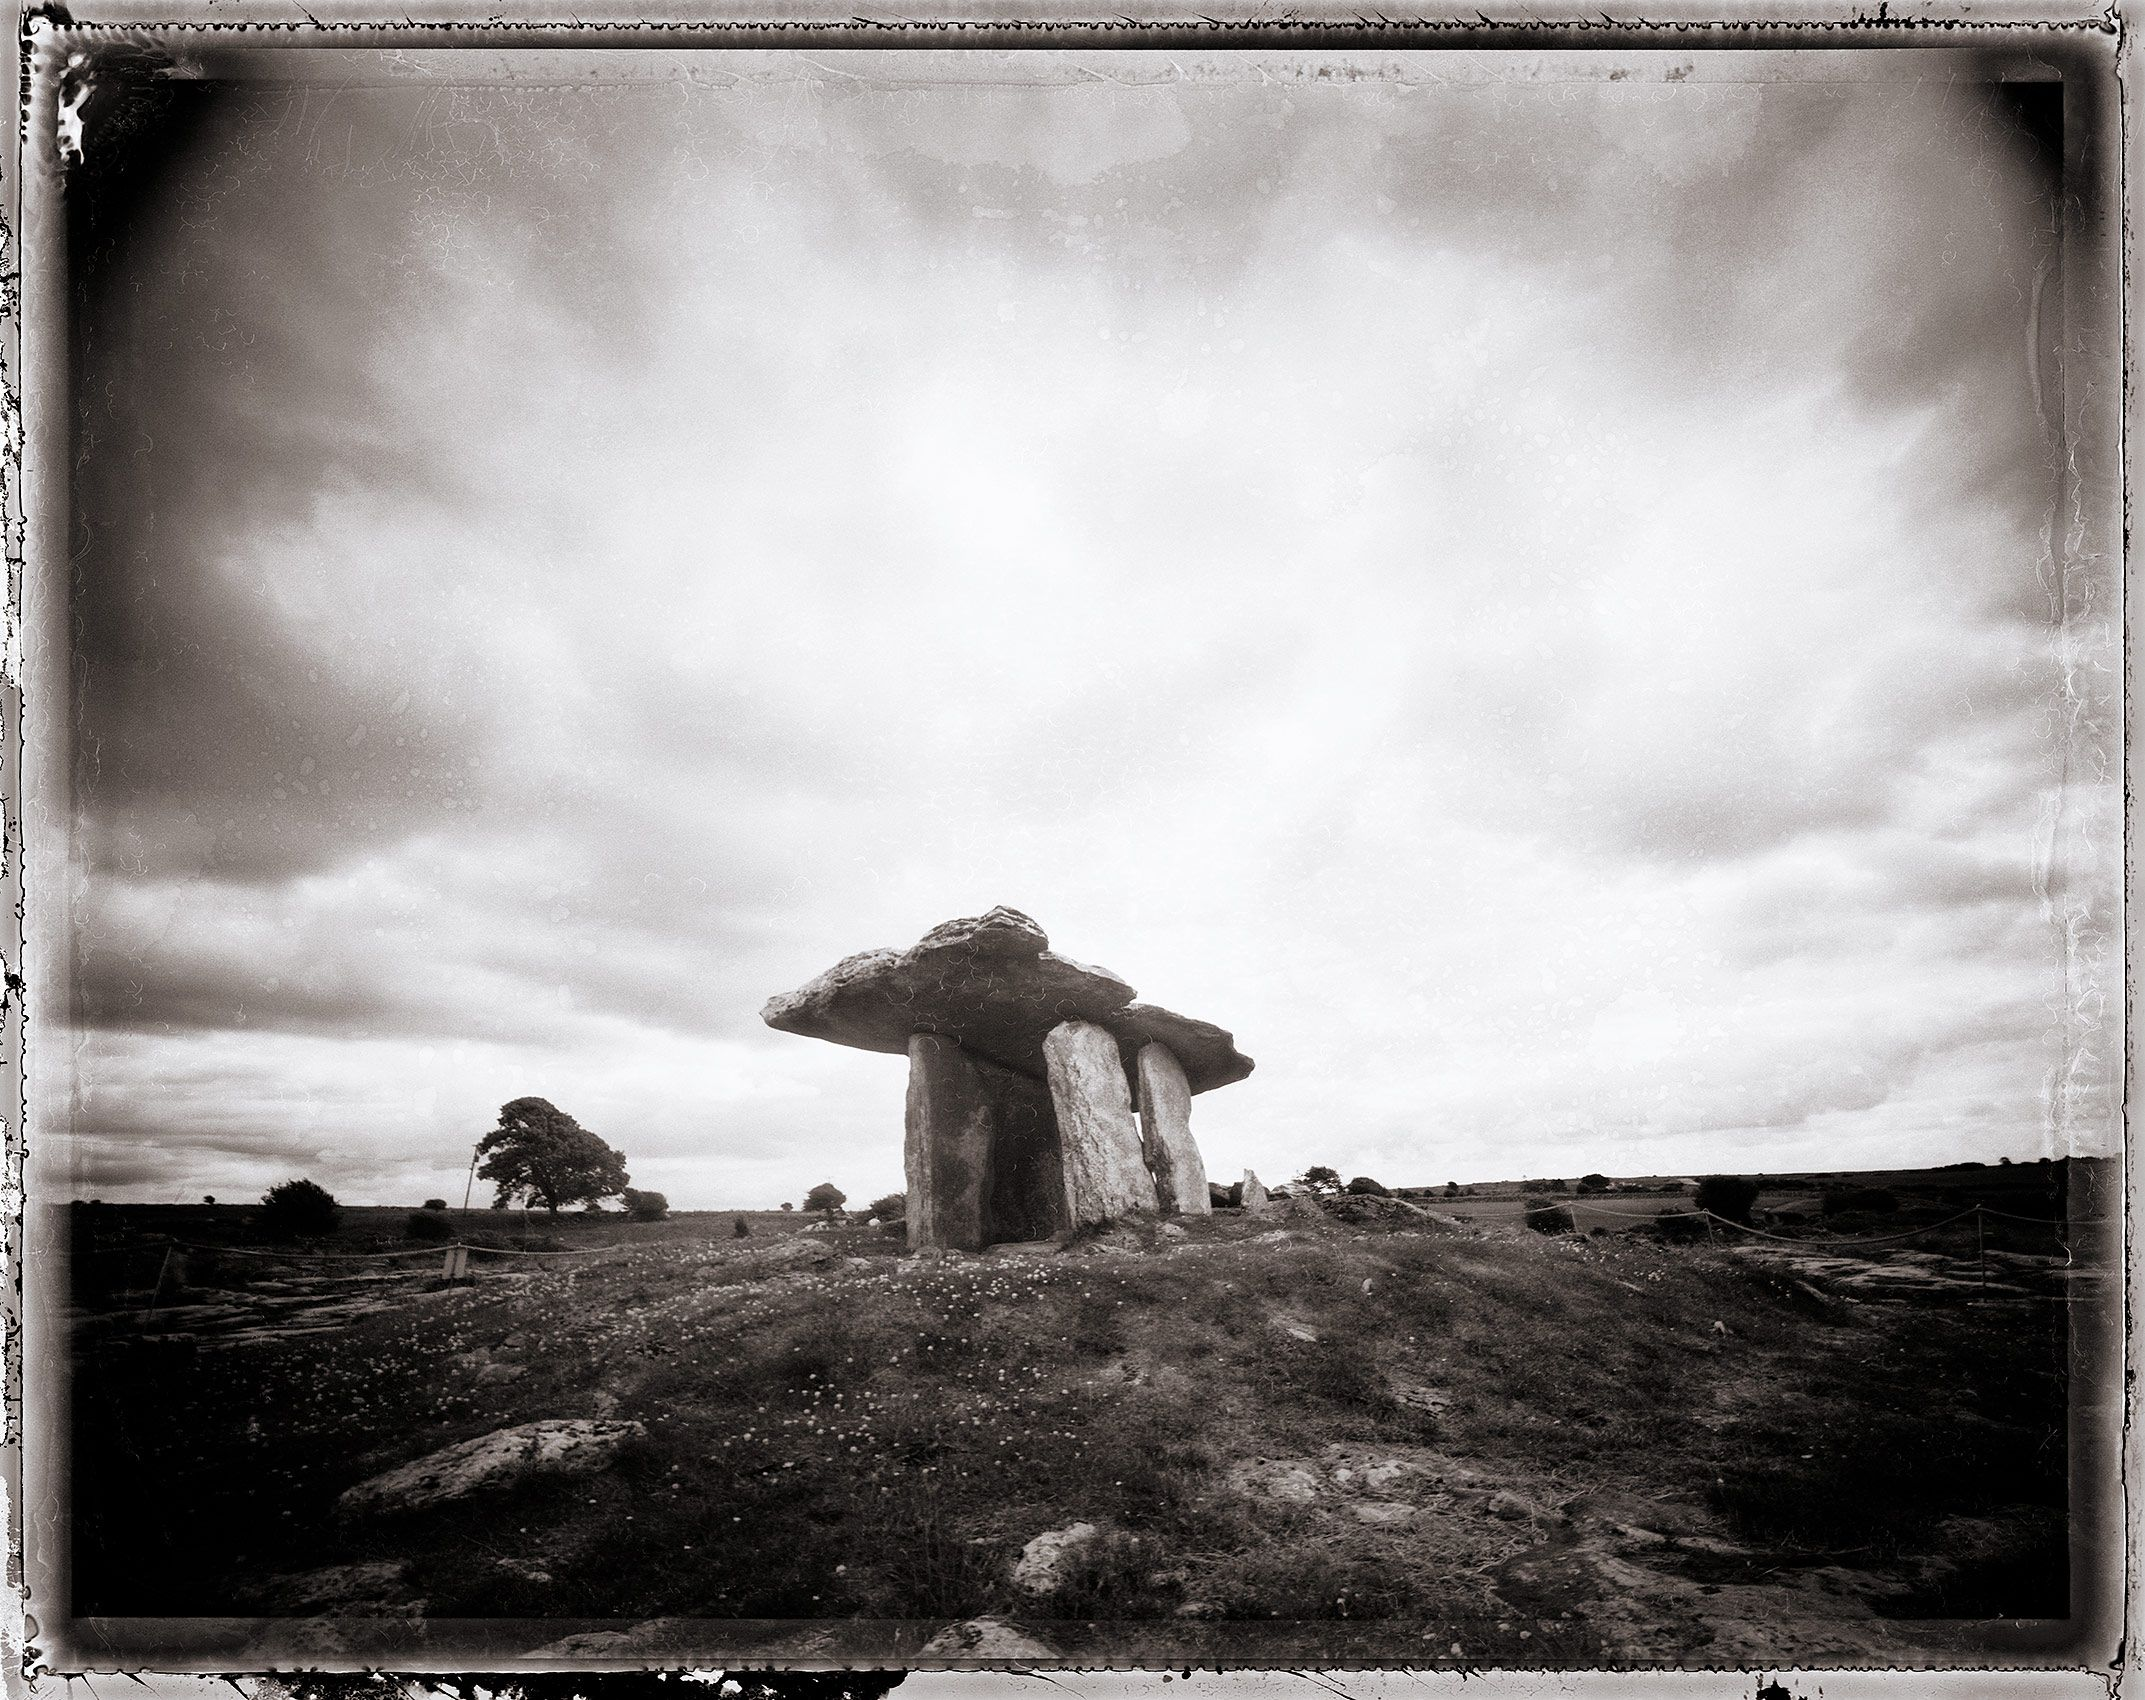 Poulnabrone Dolman, The Burren, Ireland